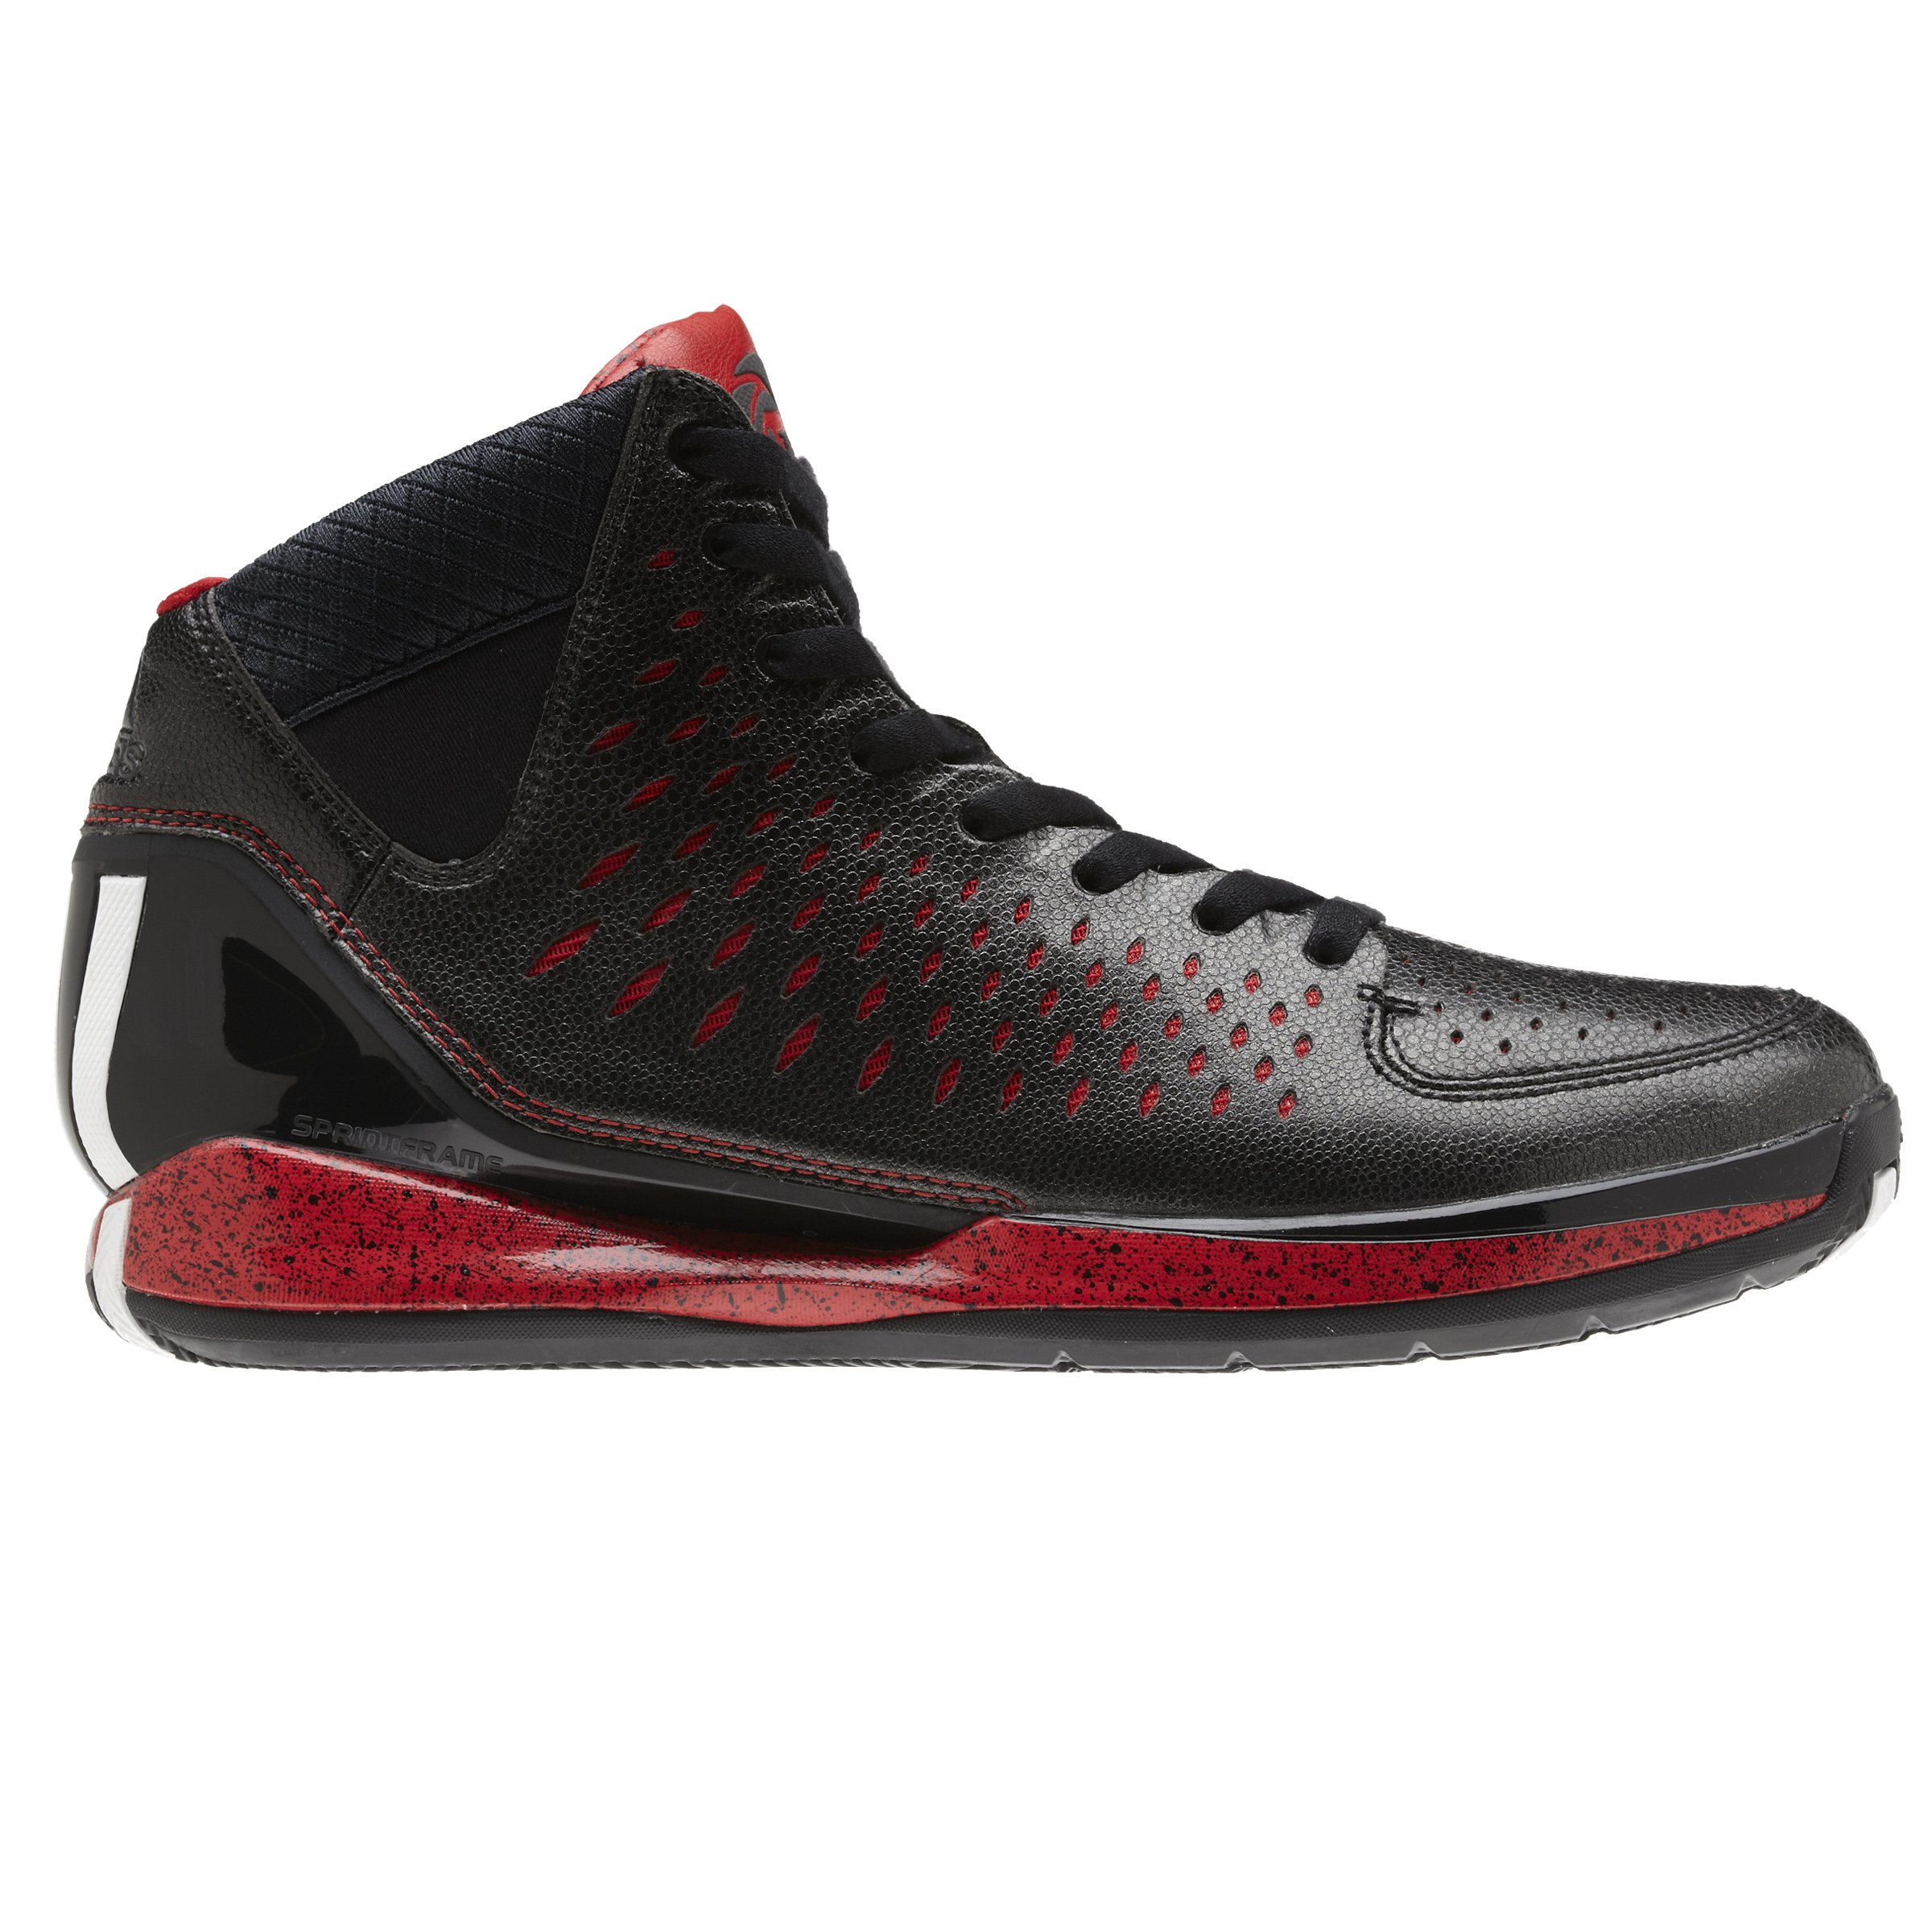 Buy derrick rose shoes price in philippines   OFF37% Discounted 901e472b50